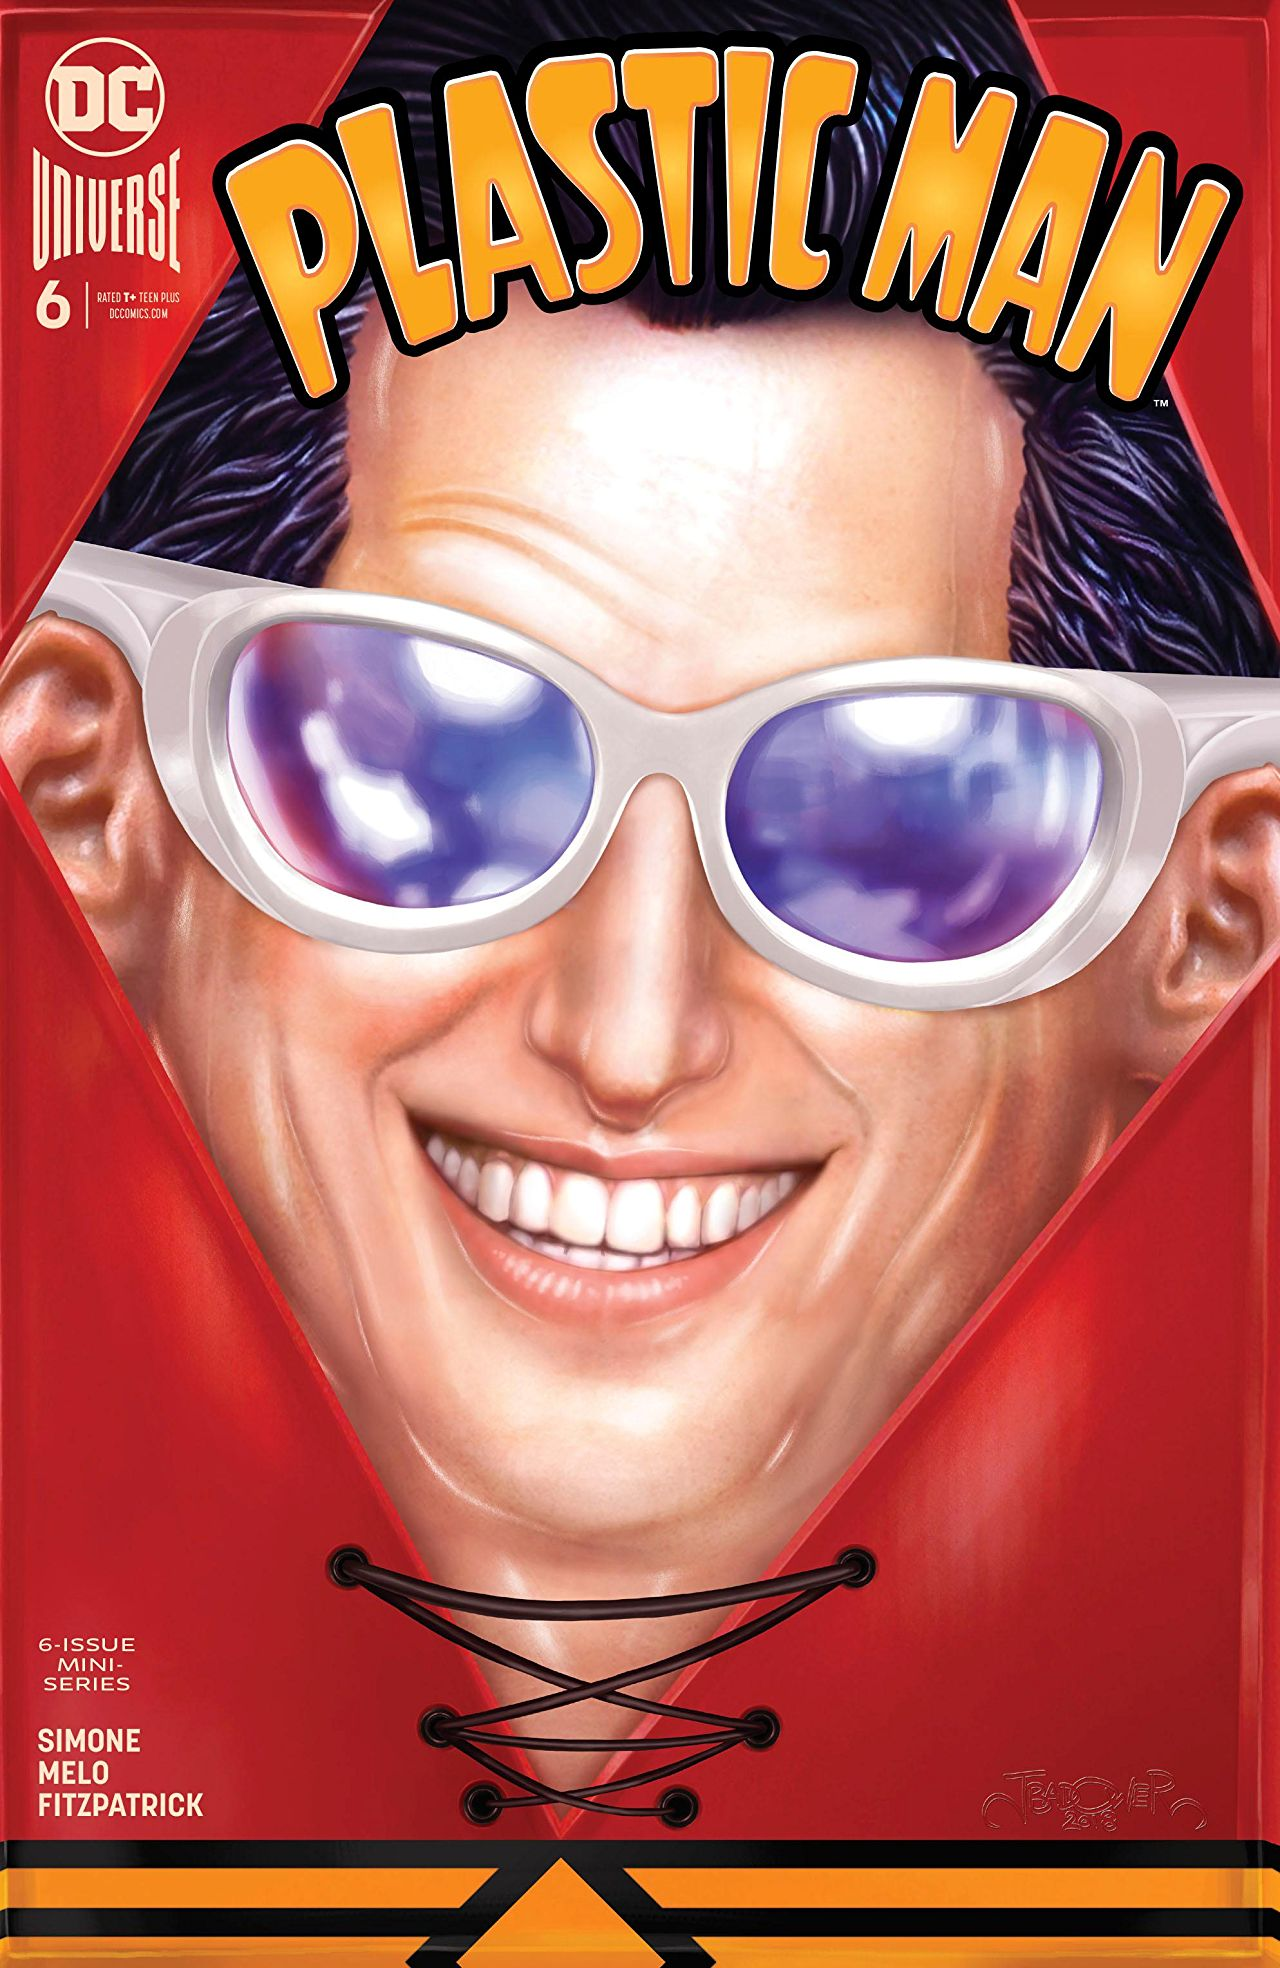 The Plastic Man miniseries ends as well as it began. Definitely a series to recommend to new fans.